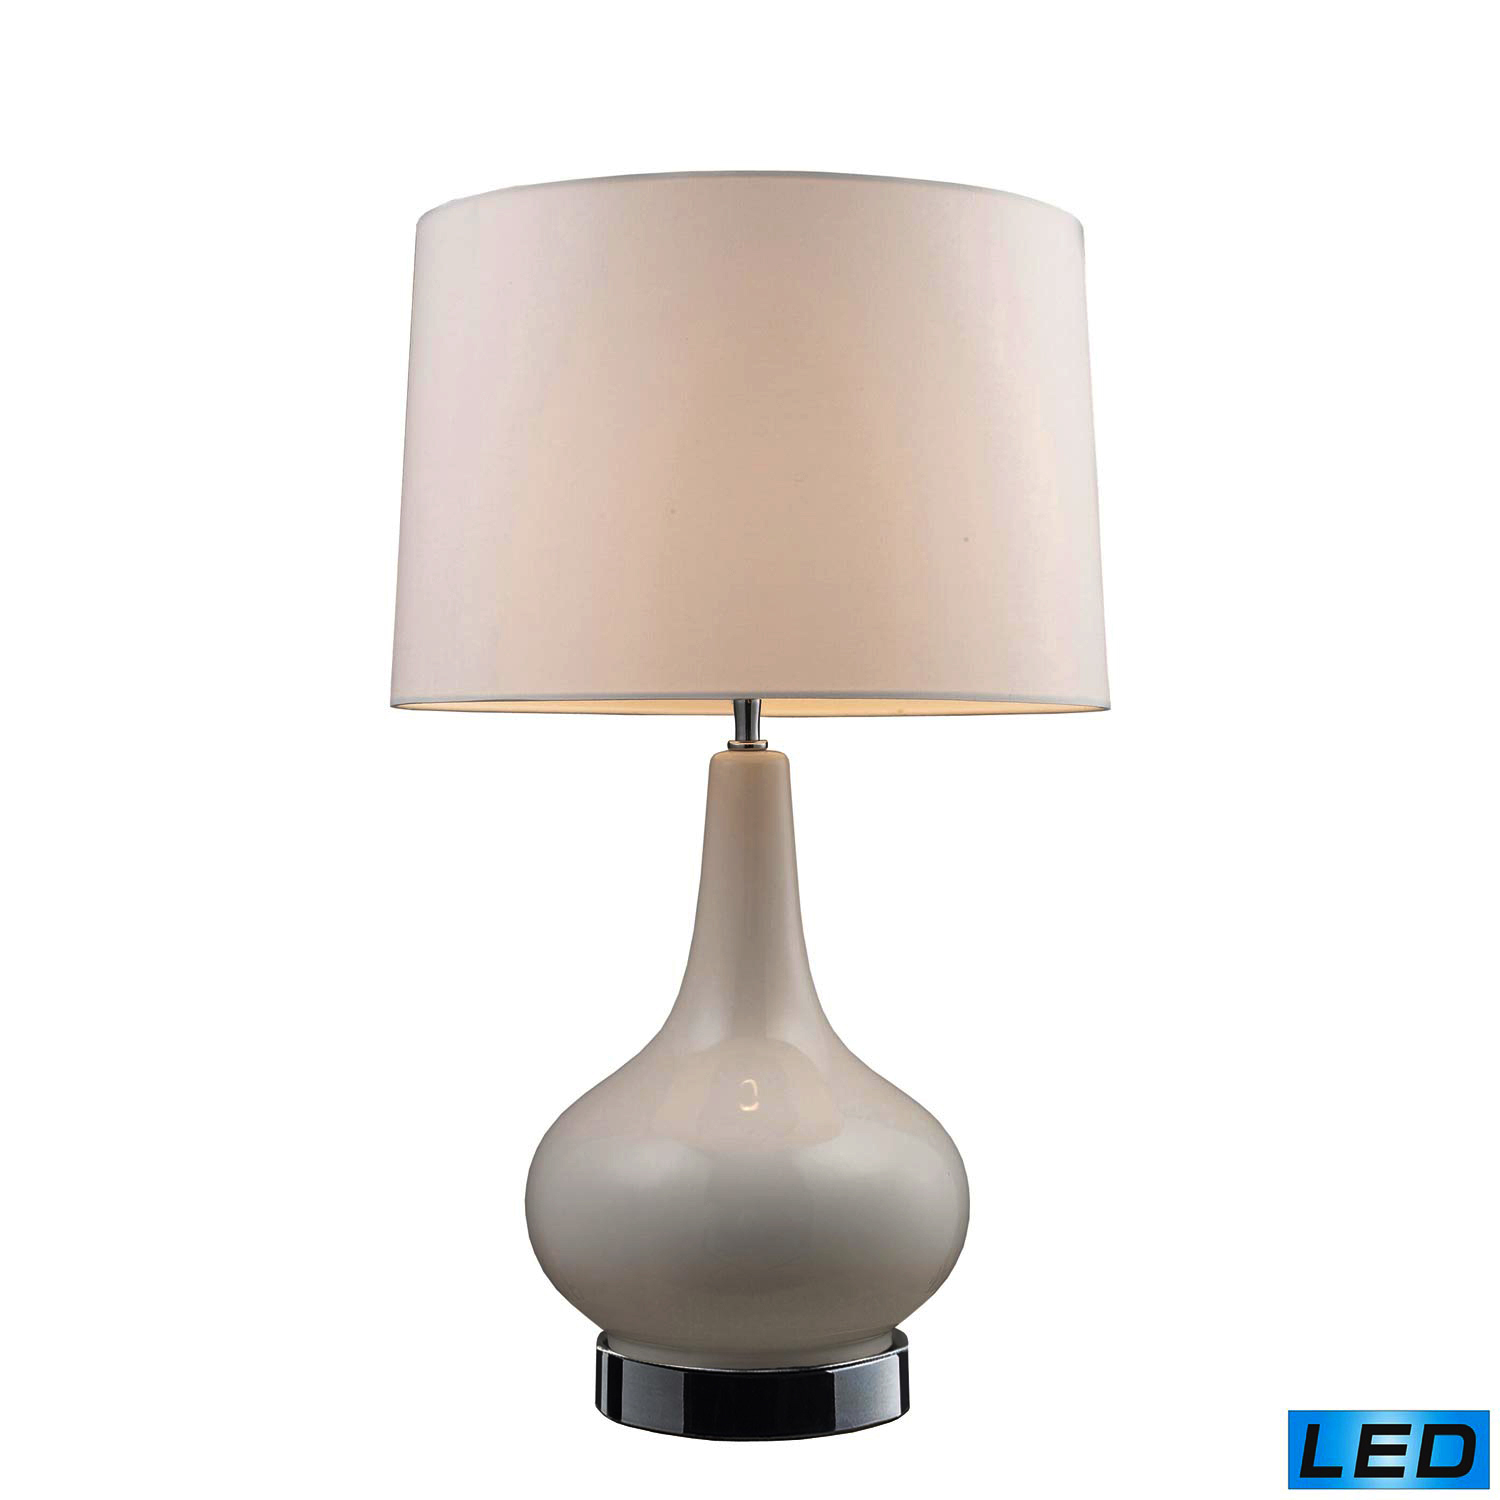 Elk Lighting 3935/1 -LED Continuum Table Lamp - White and Chrome